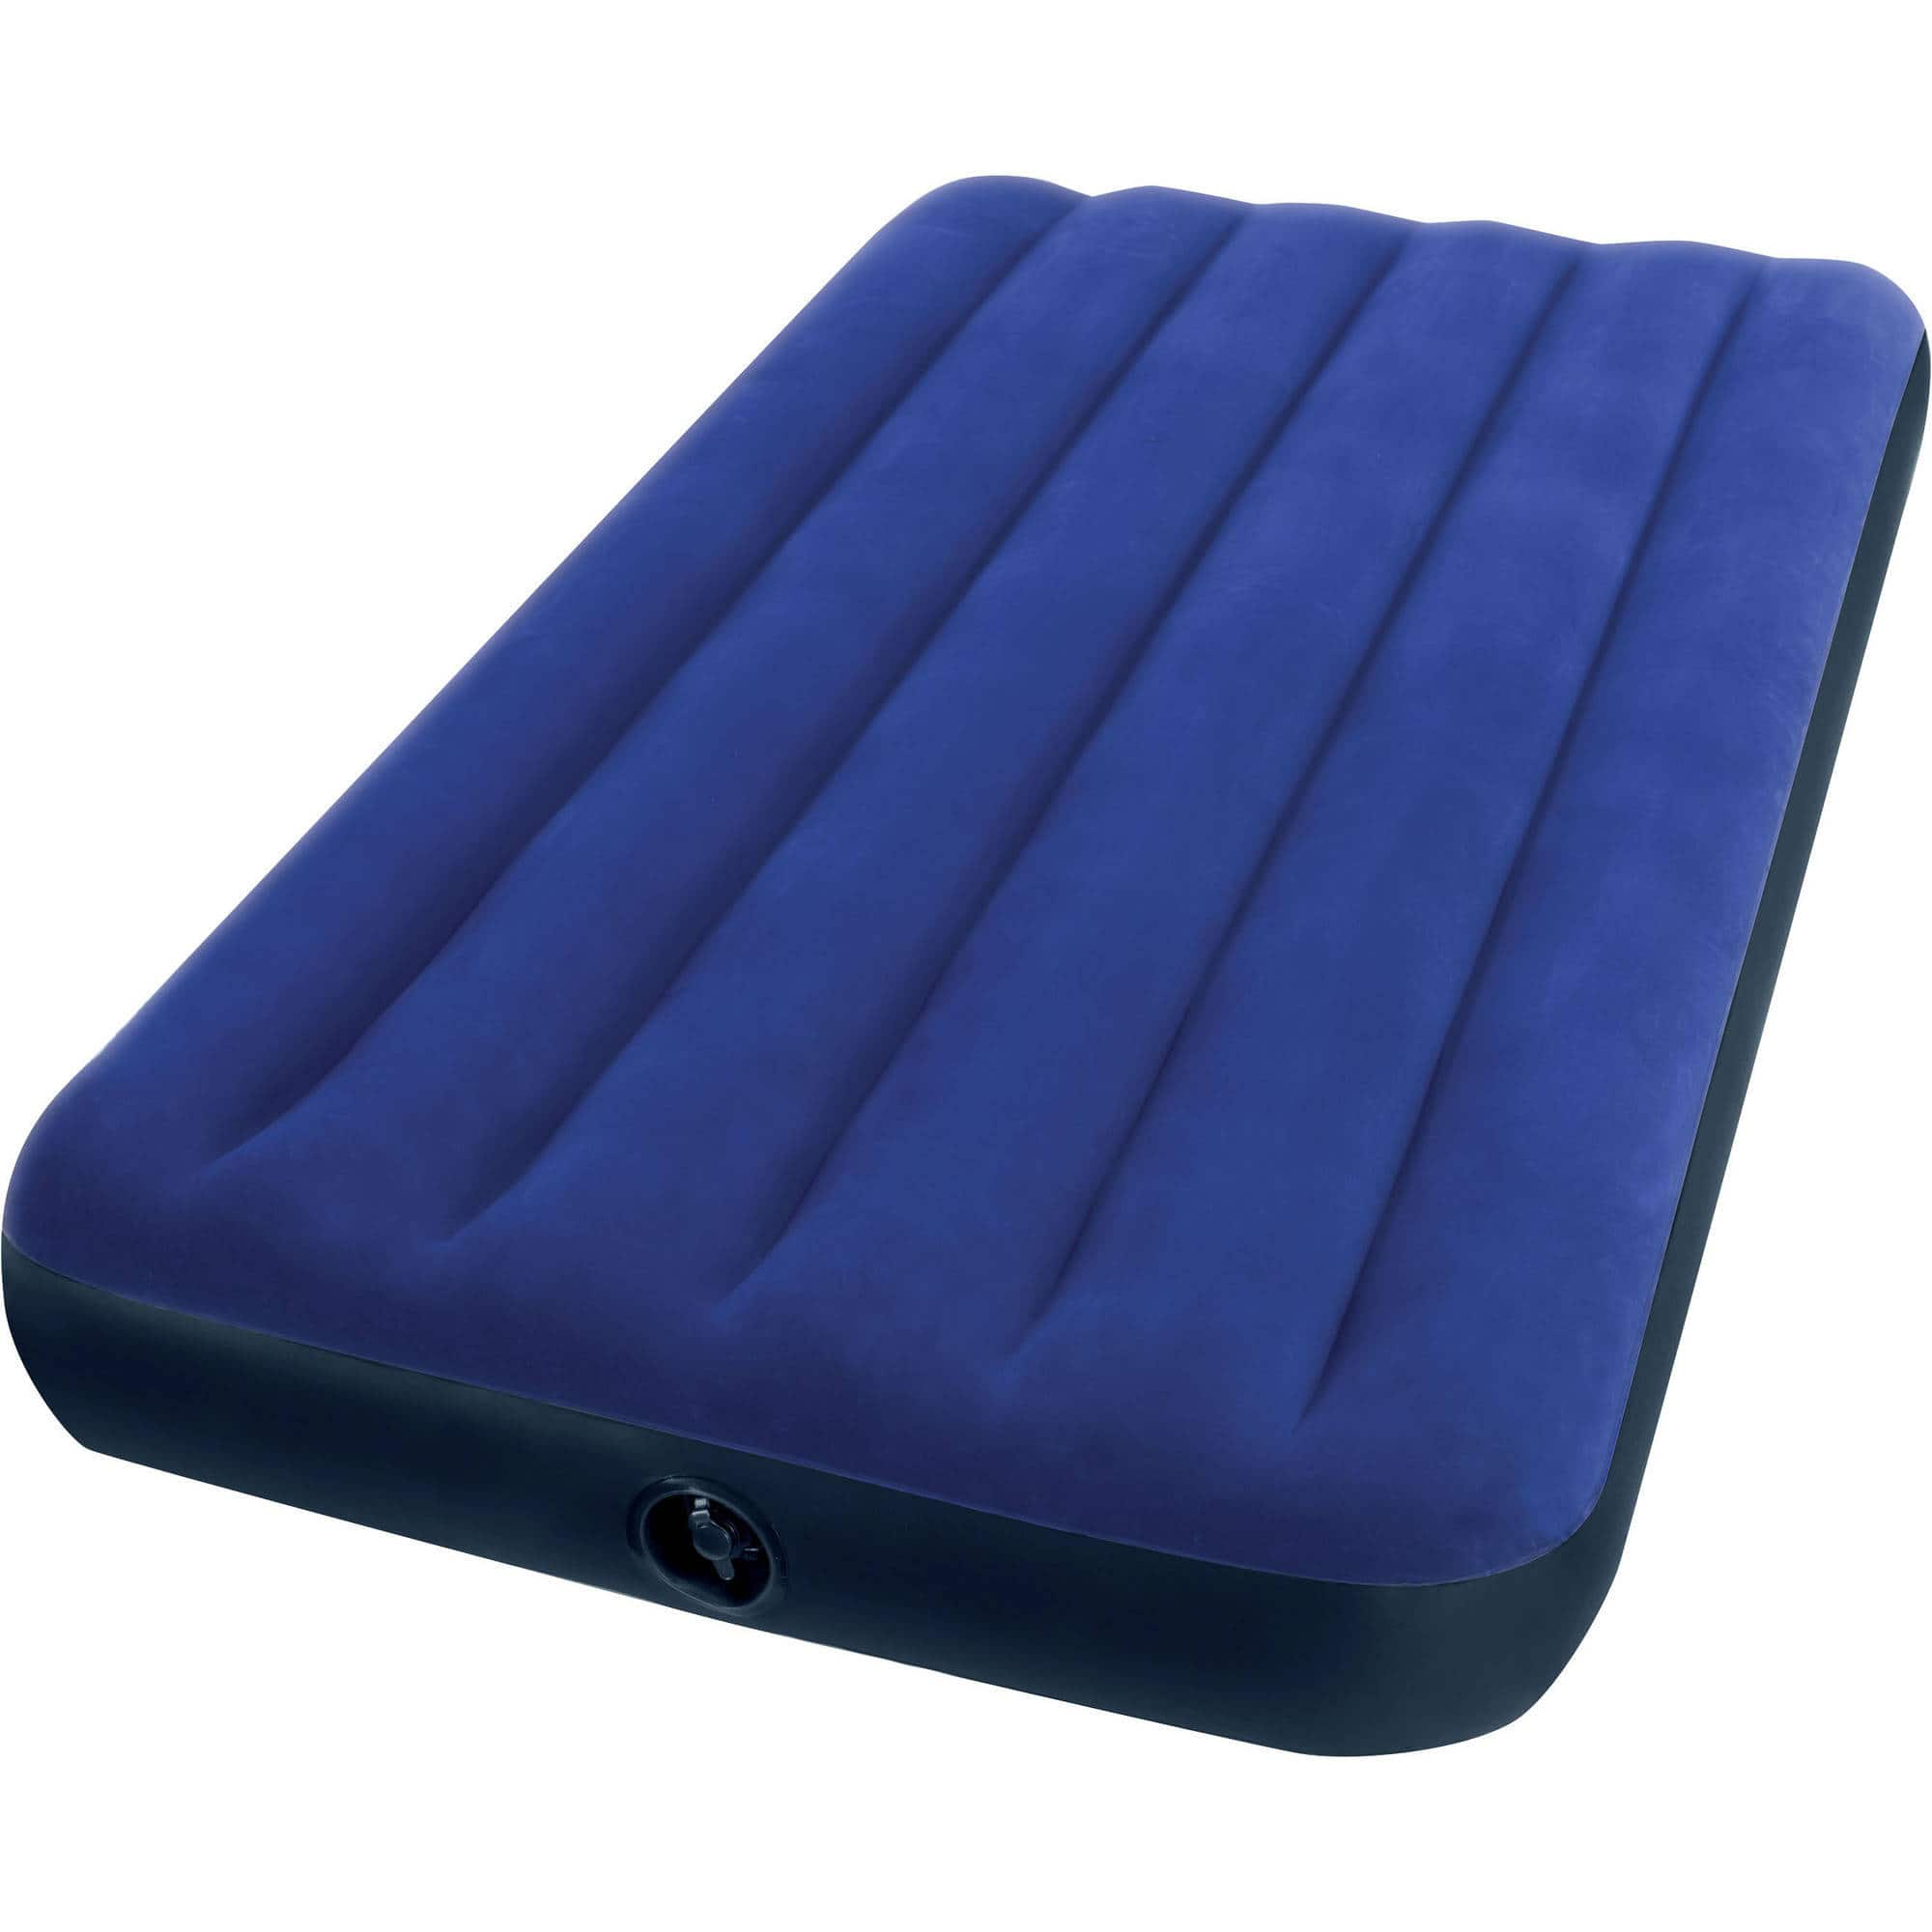 Intex Classic Downy Airbed Mattress $7.97 & Up @Walmart.com